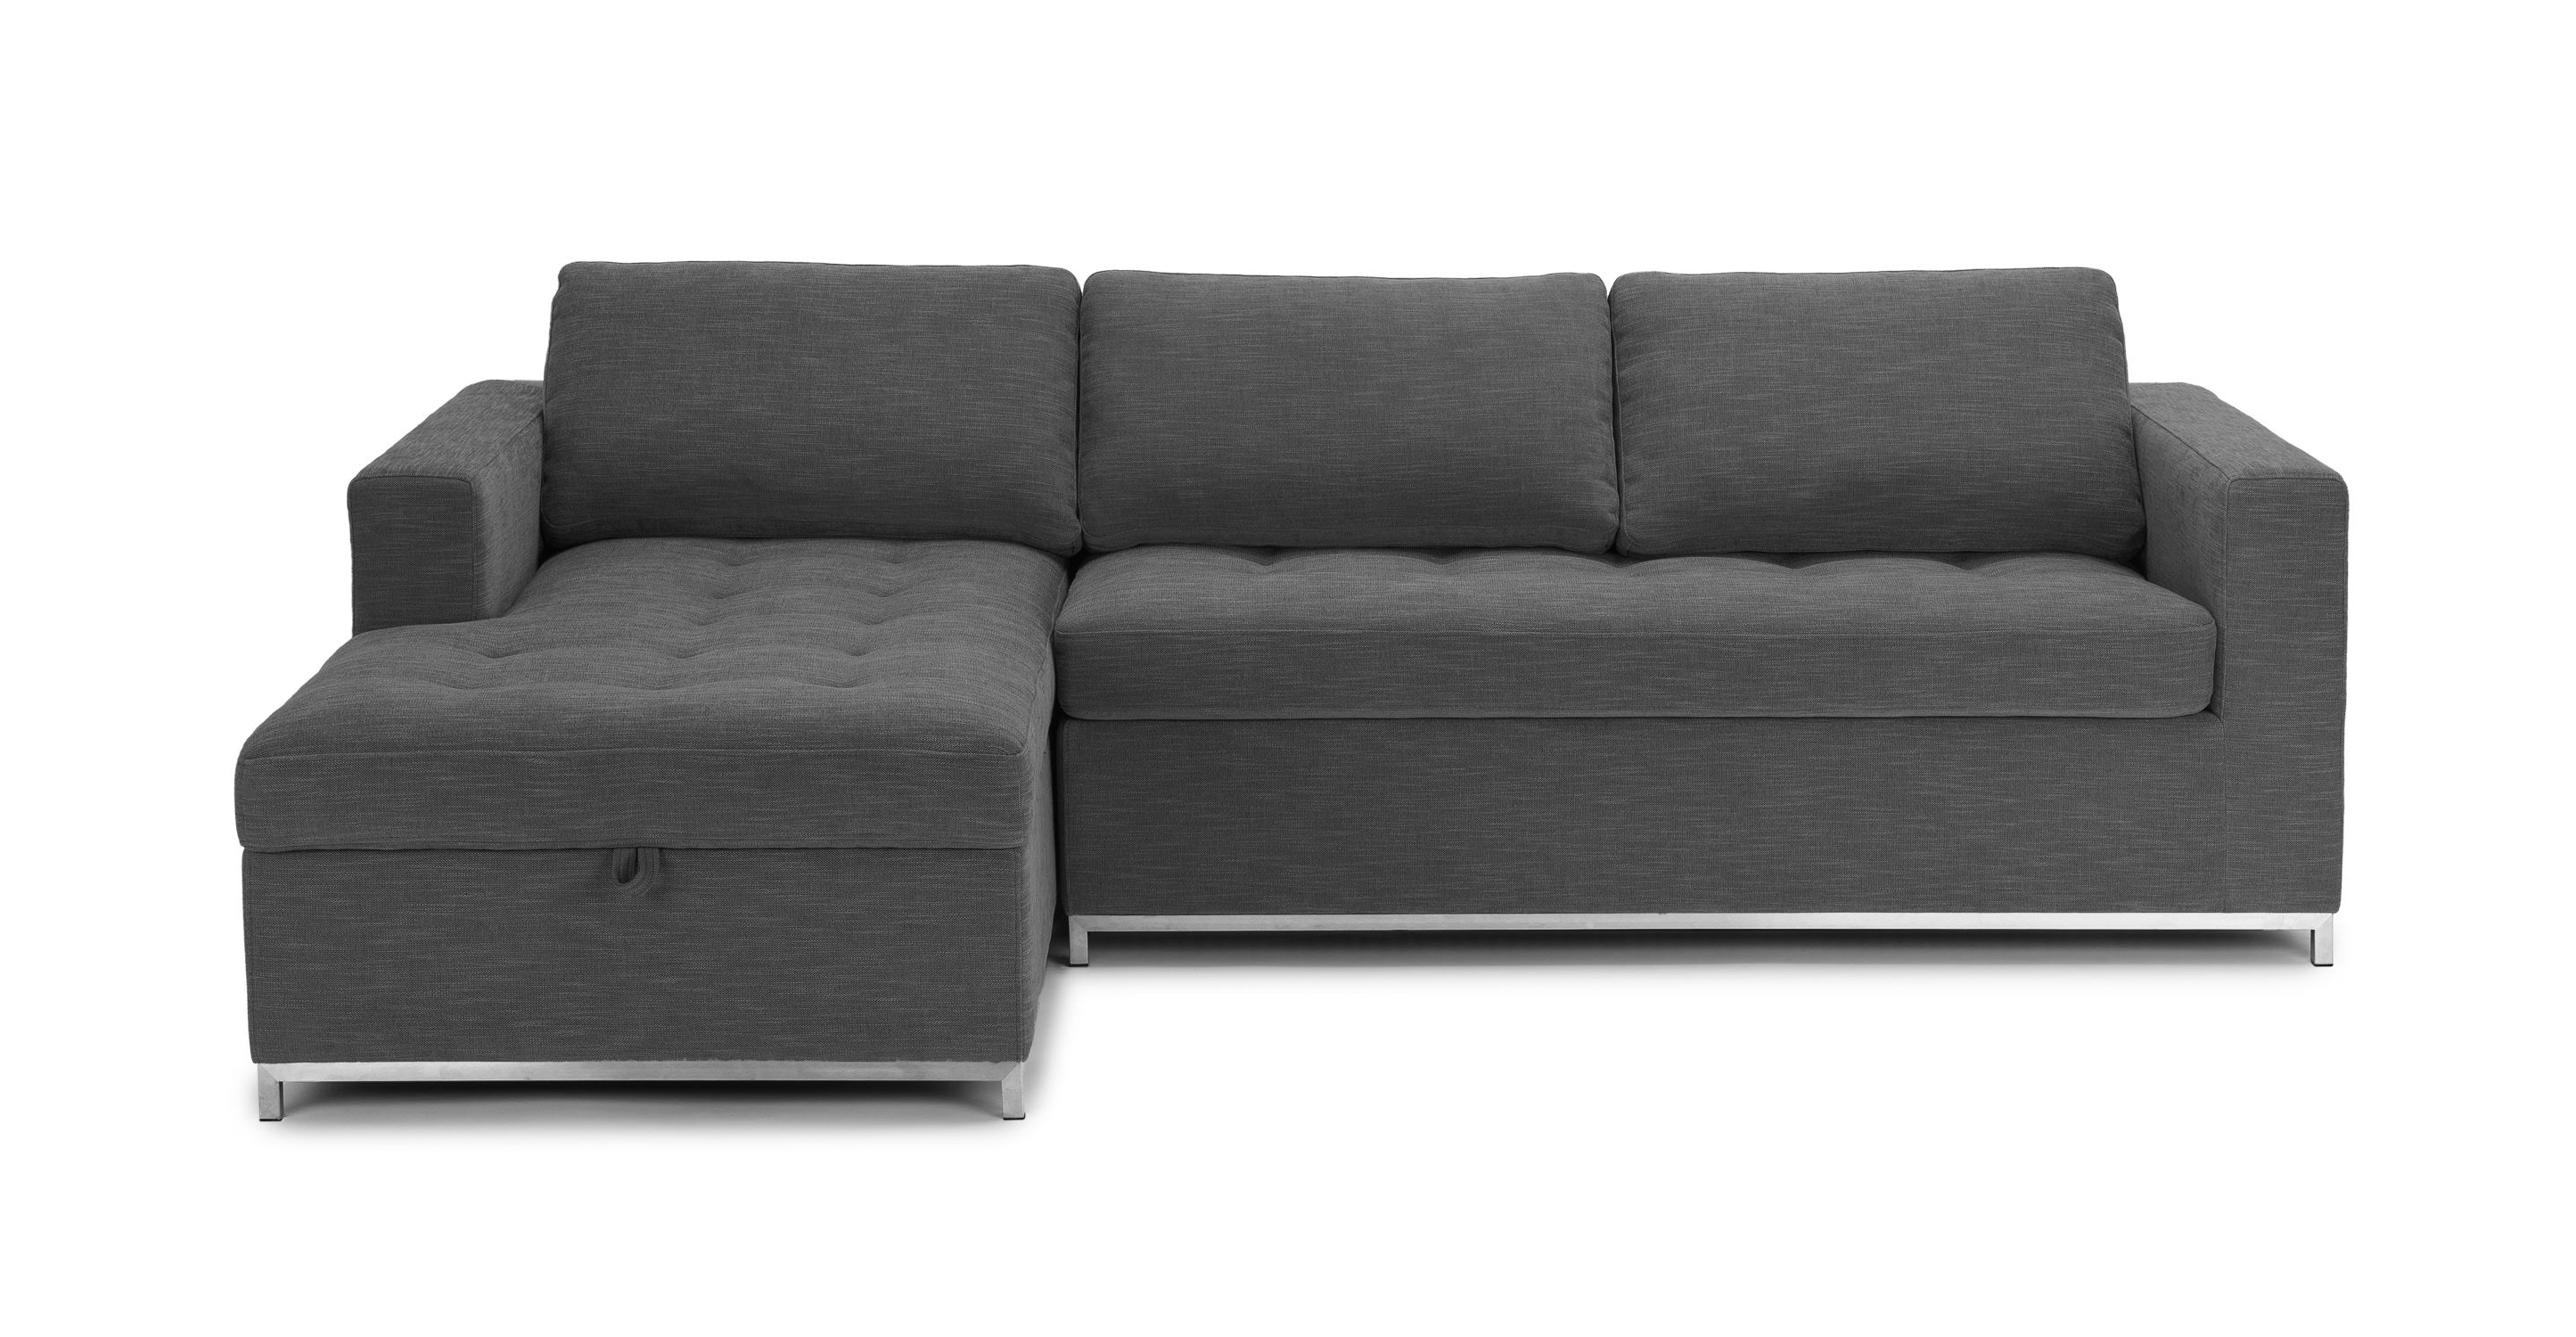 Well Known Best Of Sleeper Chaise Sofa – Buildsimplehome Pertaining To Taren Reversible Sofa/chaise Sleeper Sectionals With Storage Ottoman (View 5 of 20)